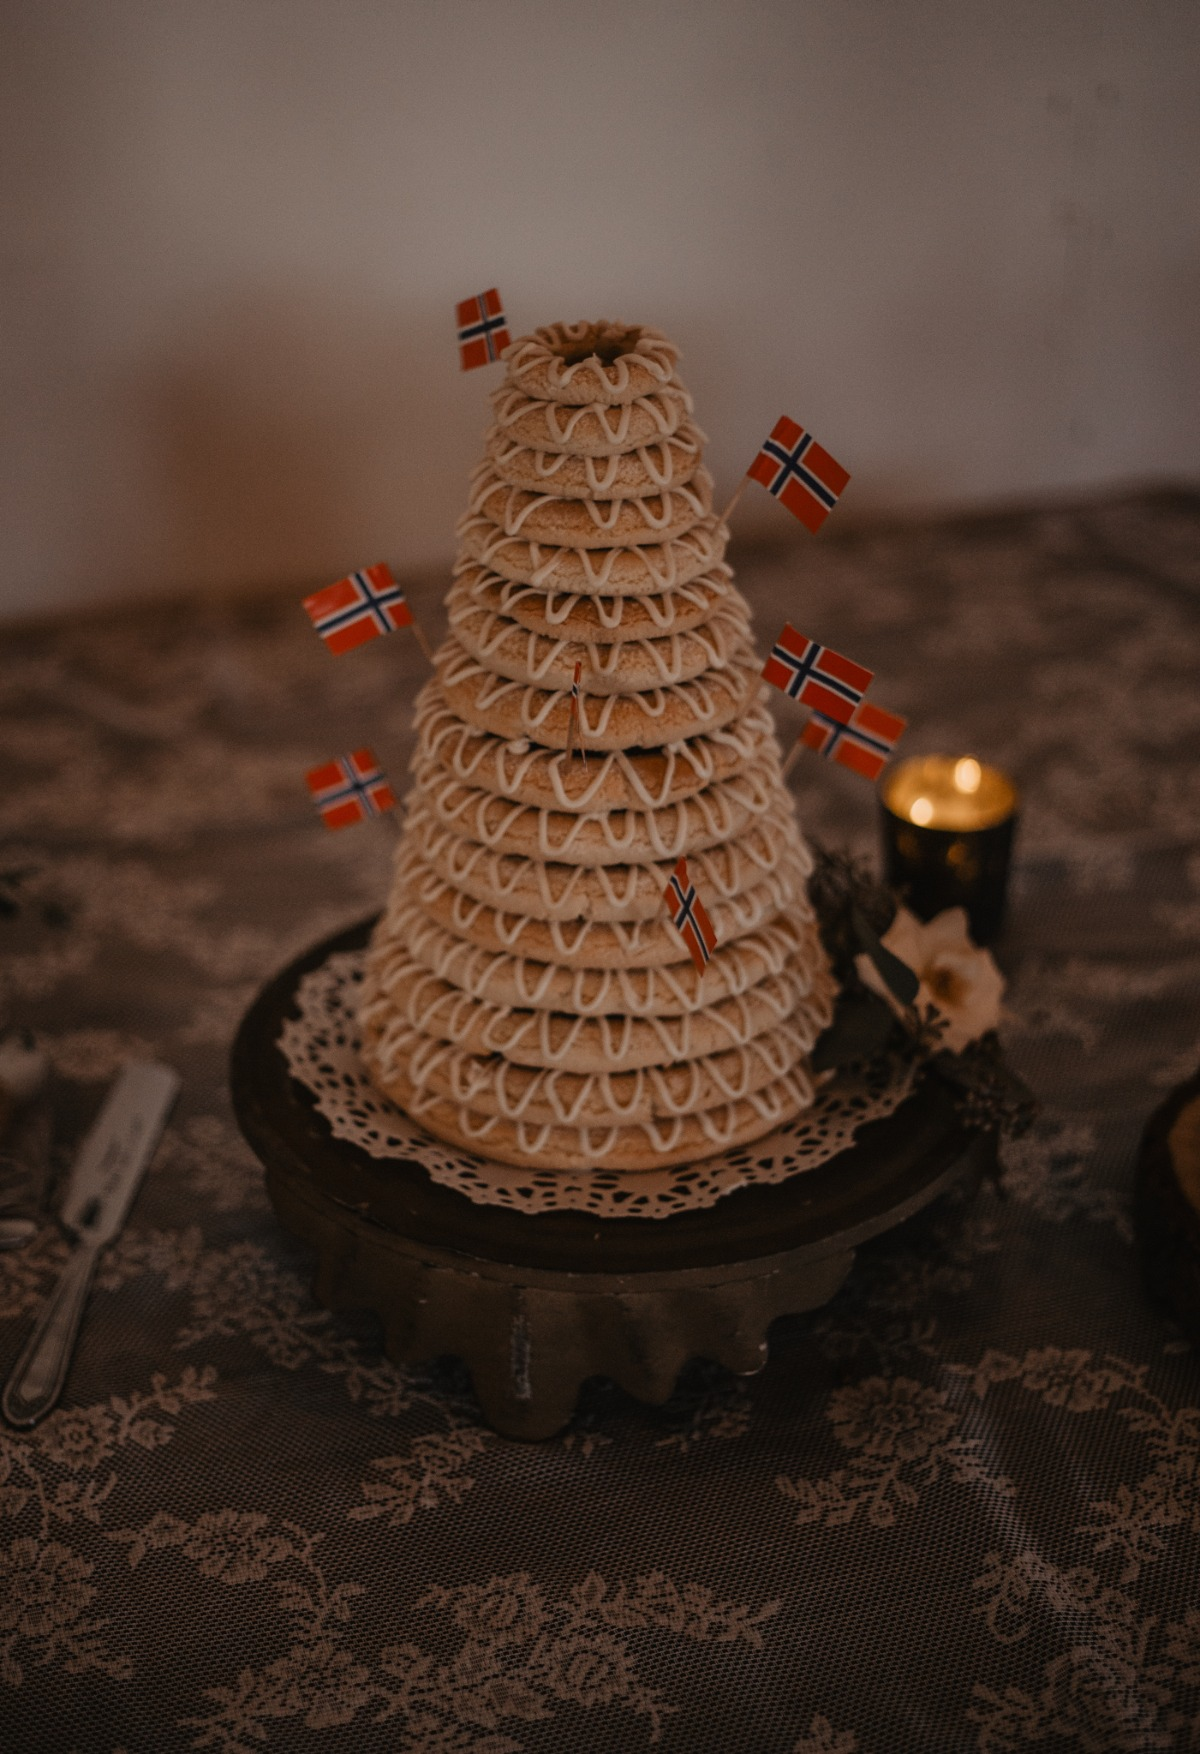 Norwegian traditional cake